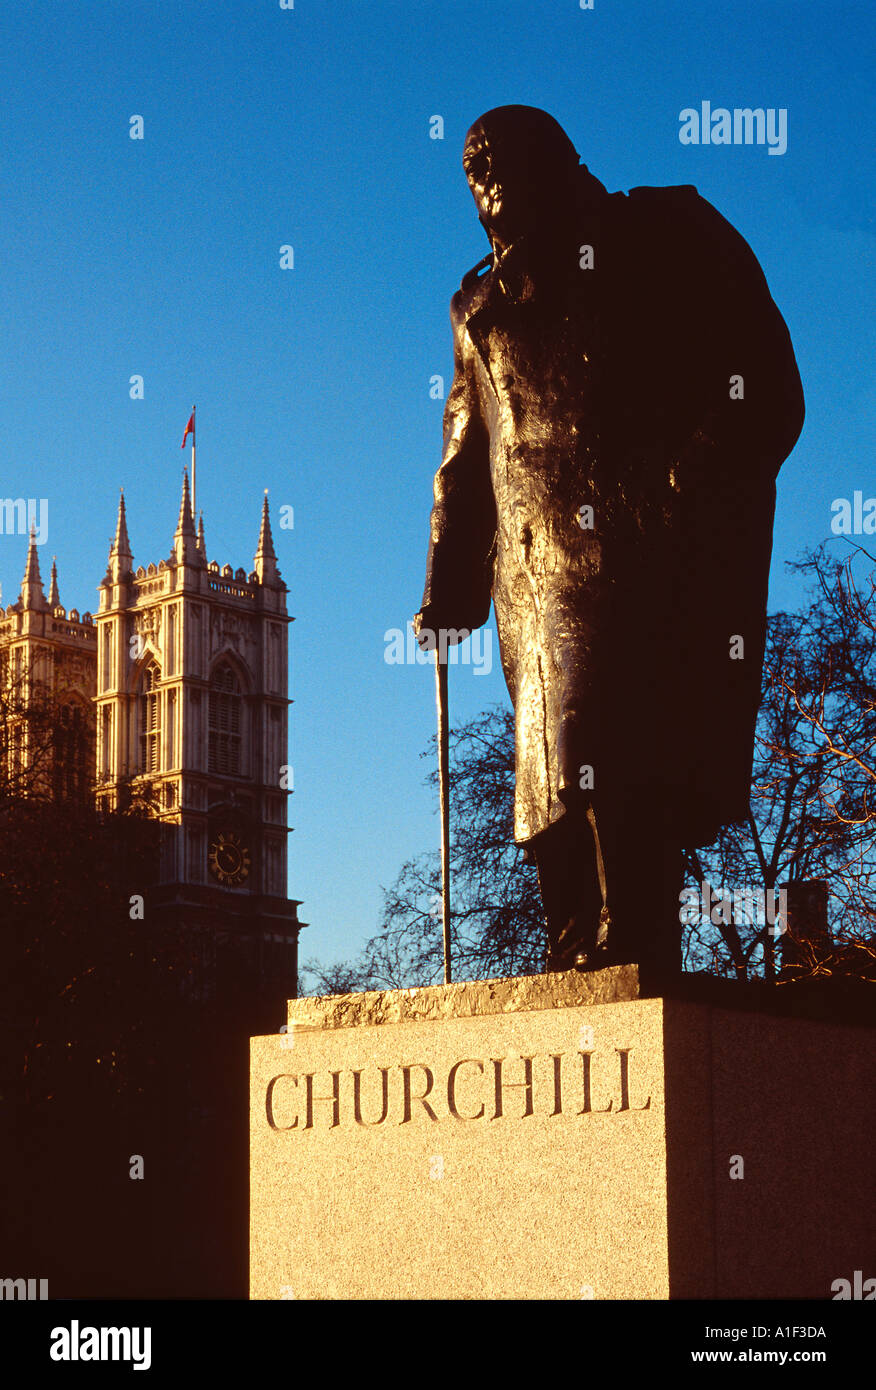 Churchill Statue Westminster London UK - Stock Image